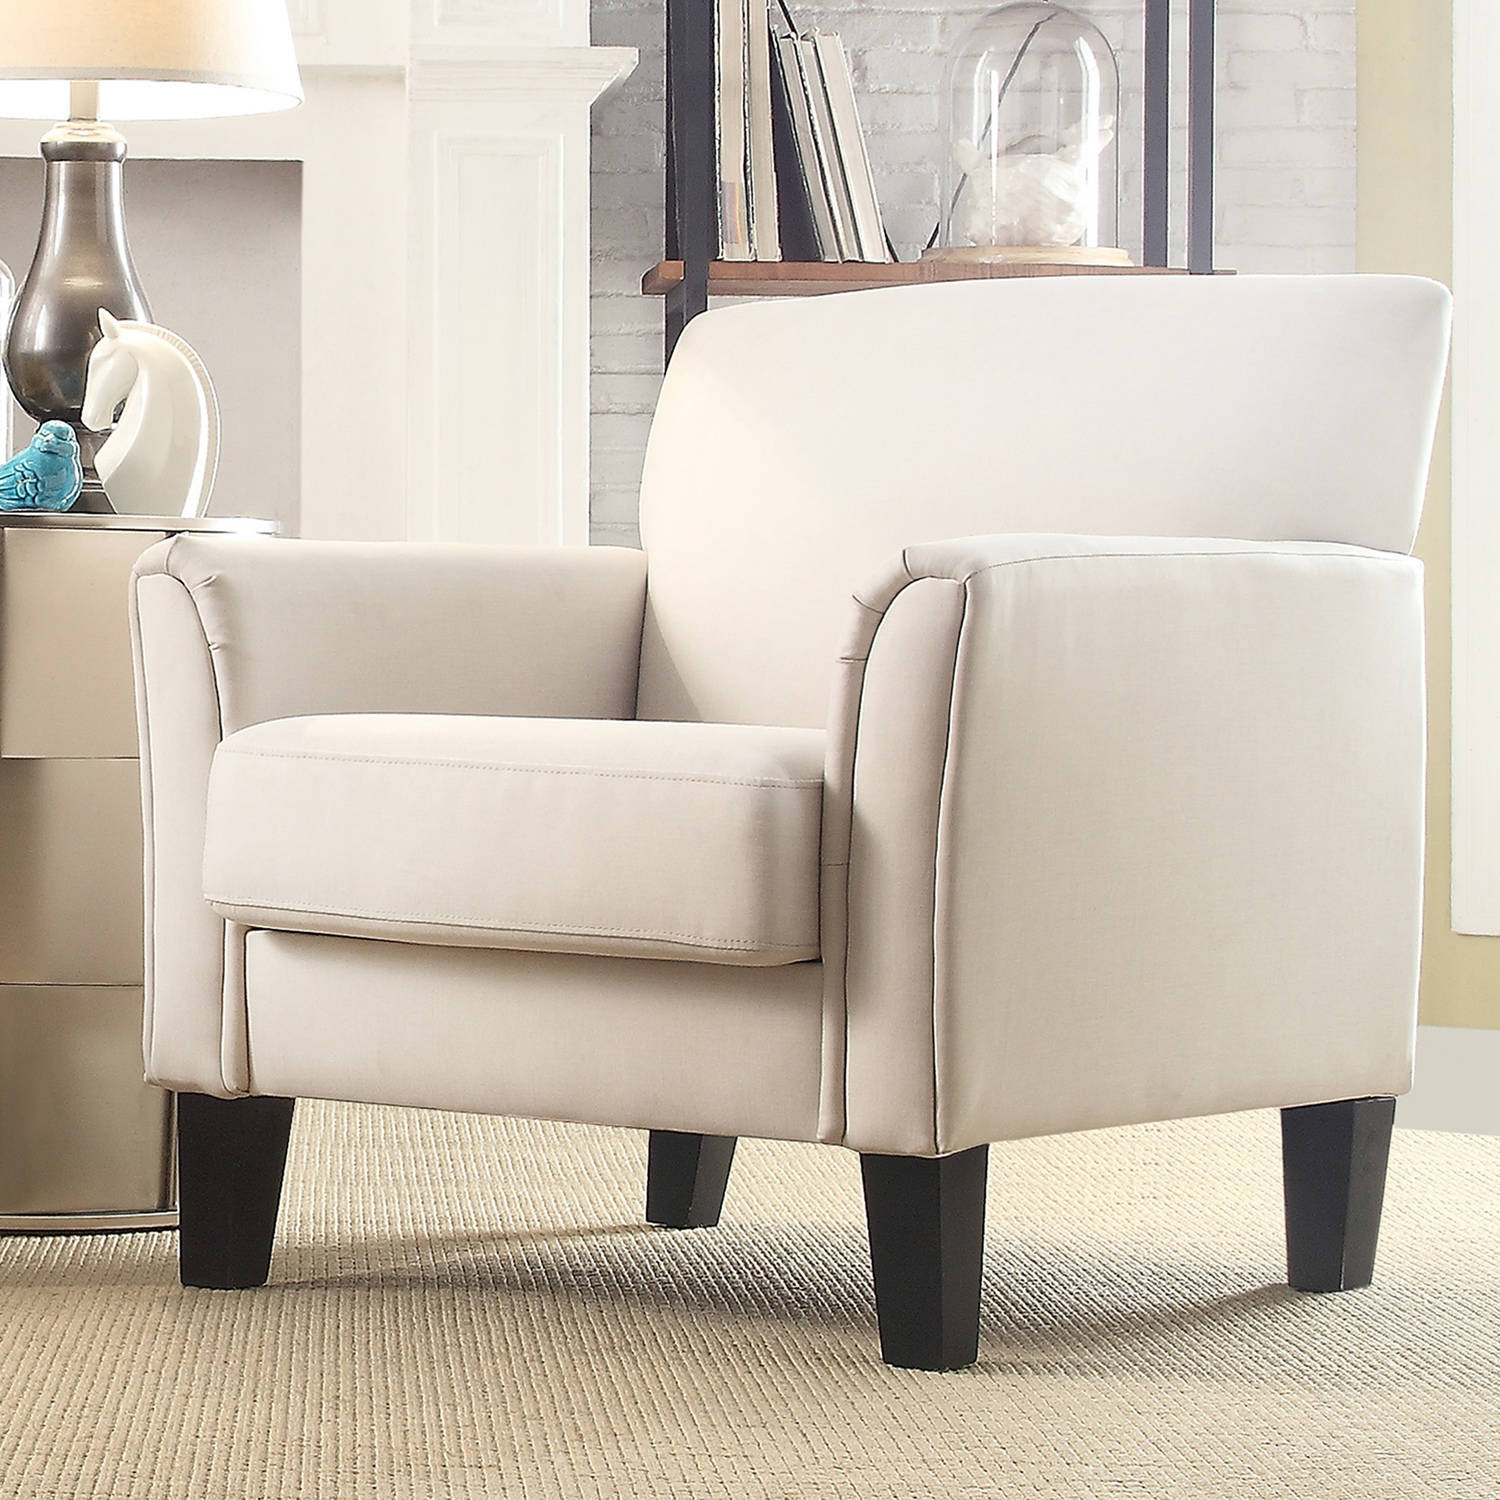 weston home tribeca living room upholstered accent chair cream white linen